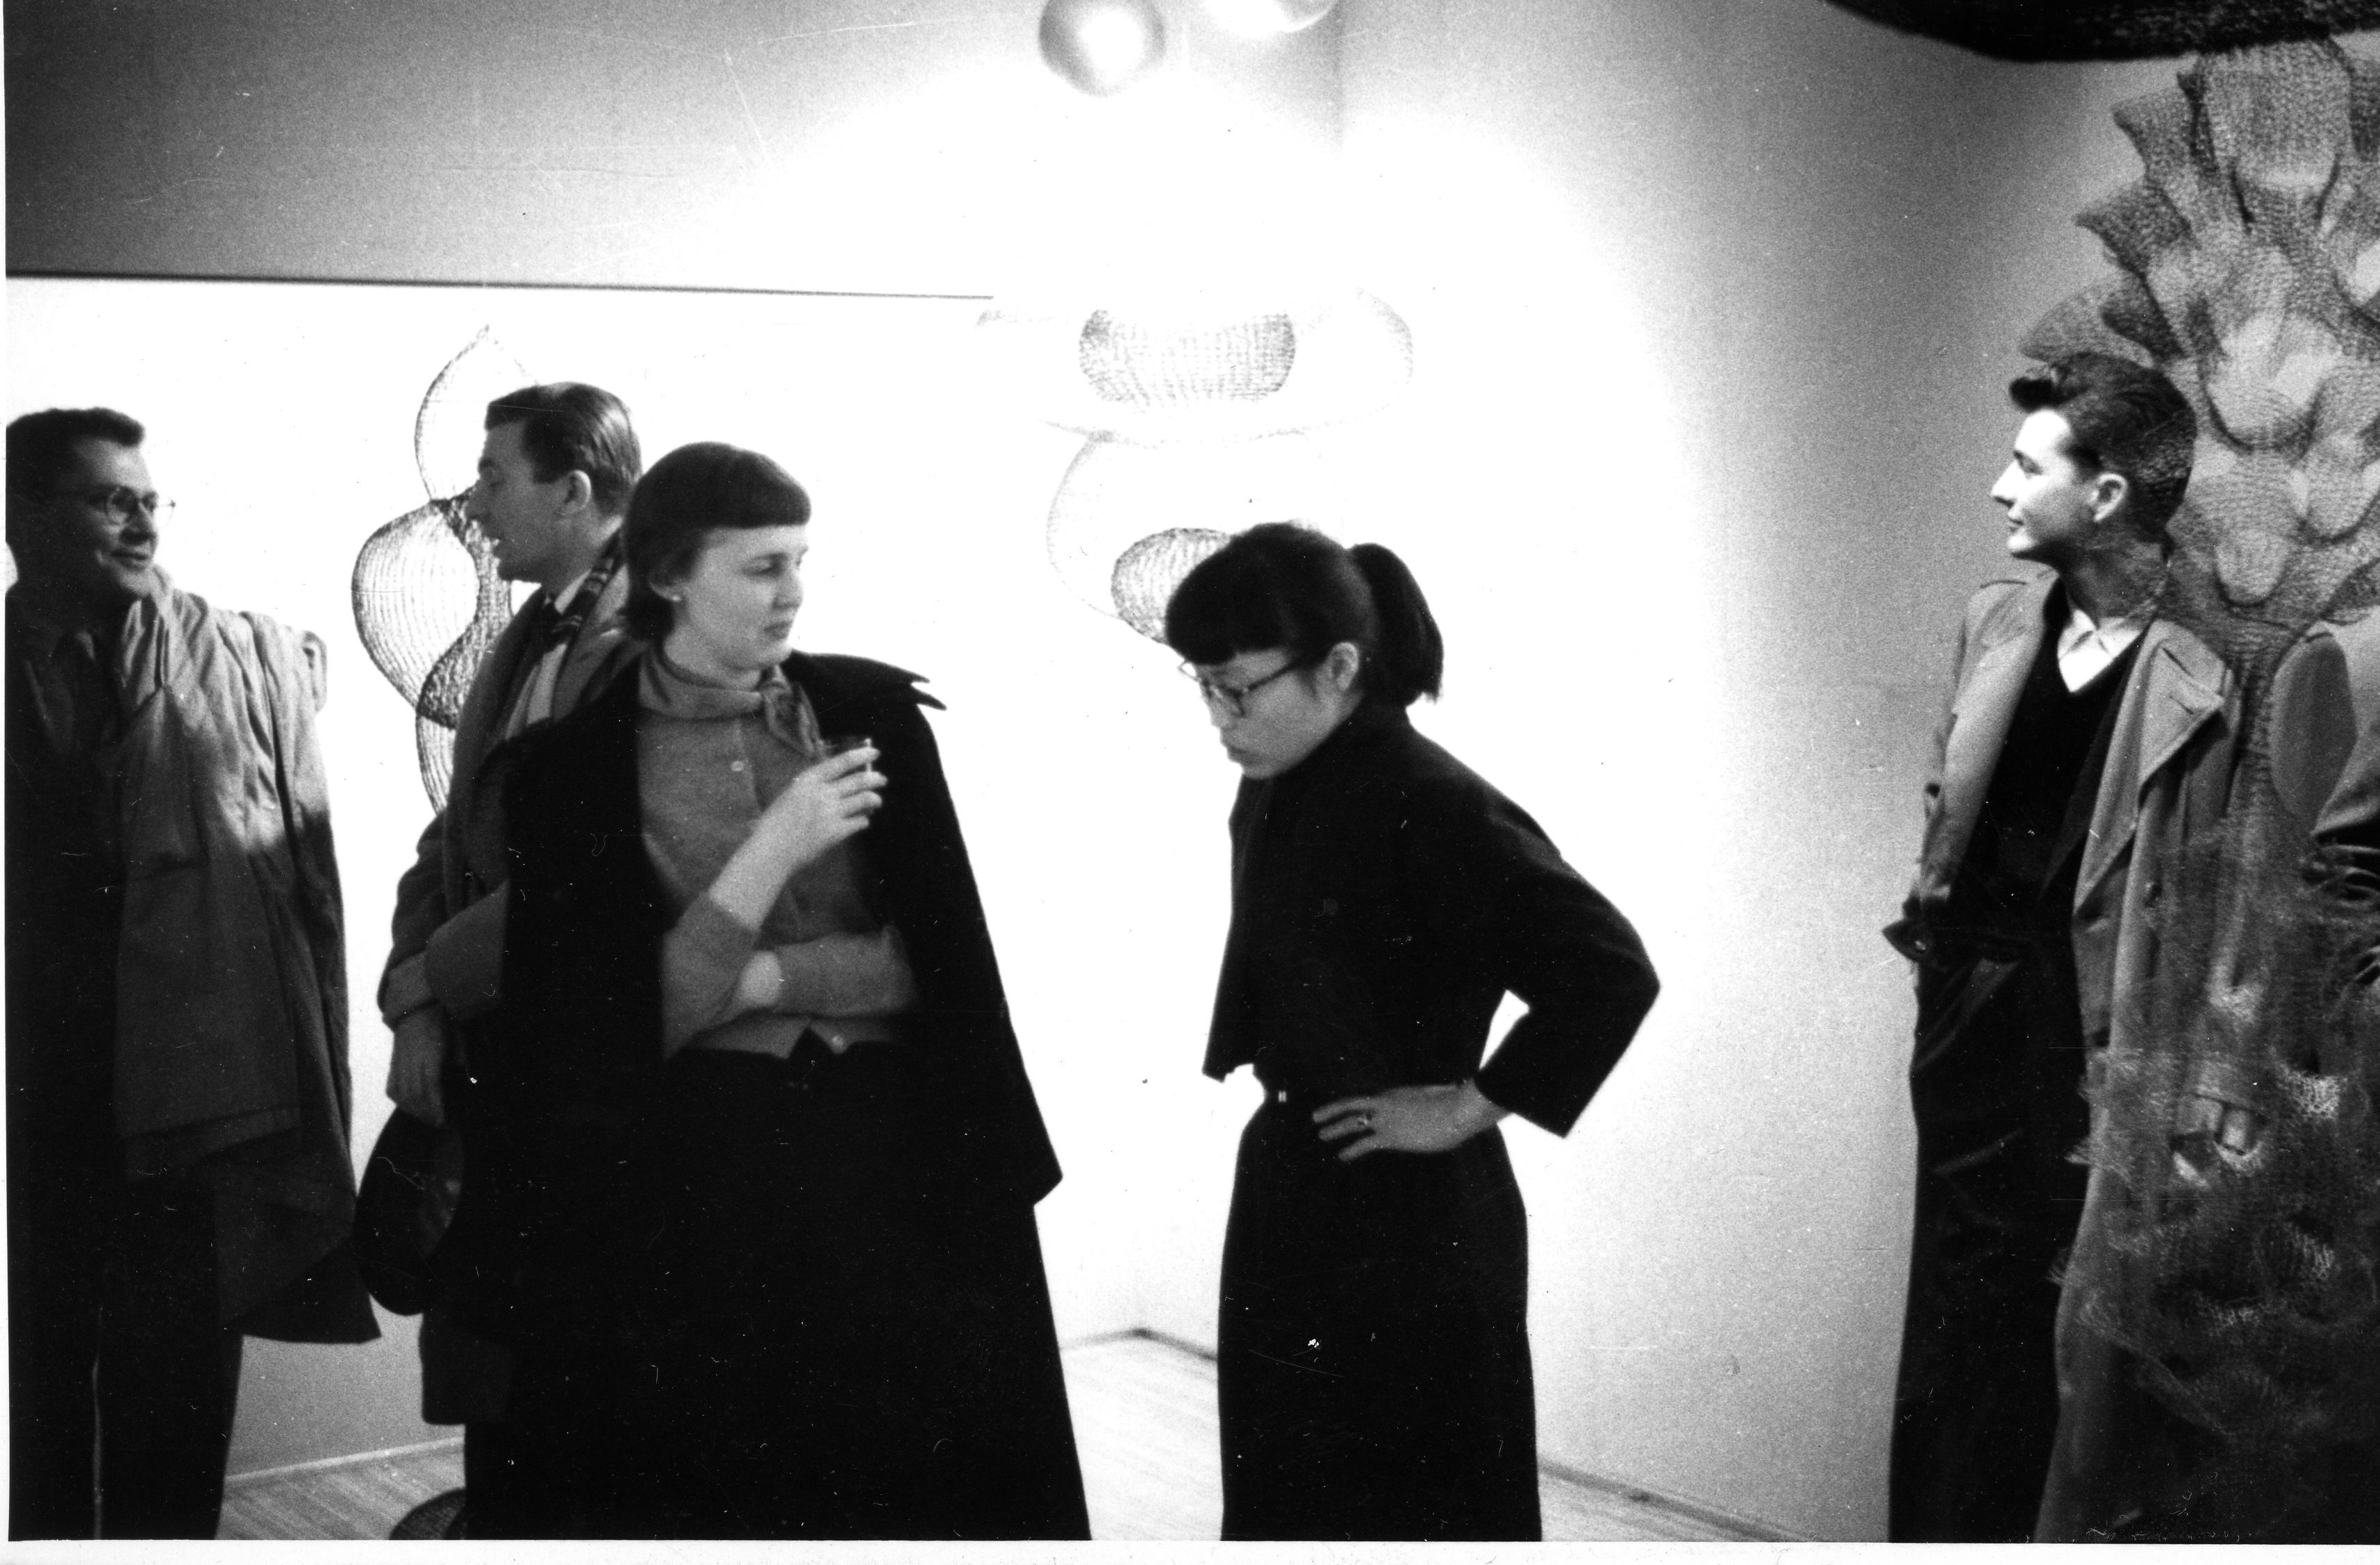 In this black and white photograph, Joan Stack (wearing a long black coat as a cape and holding a glass in her hand) speaks to Ruth Asawa who is looking down towards the ground in great focus. They are standing in front of one of Asawa's hanging wire sculptures which are 3 to 4 feet long. The light behind them is harsh and creates a halo around them both, making the sculpture hard to distinguish. A group of men stand around them talking.